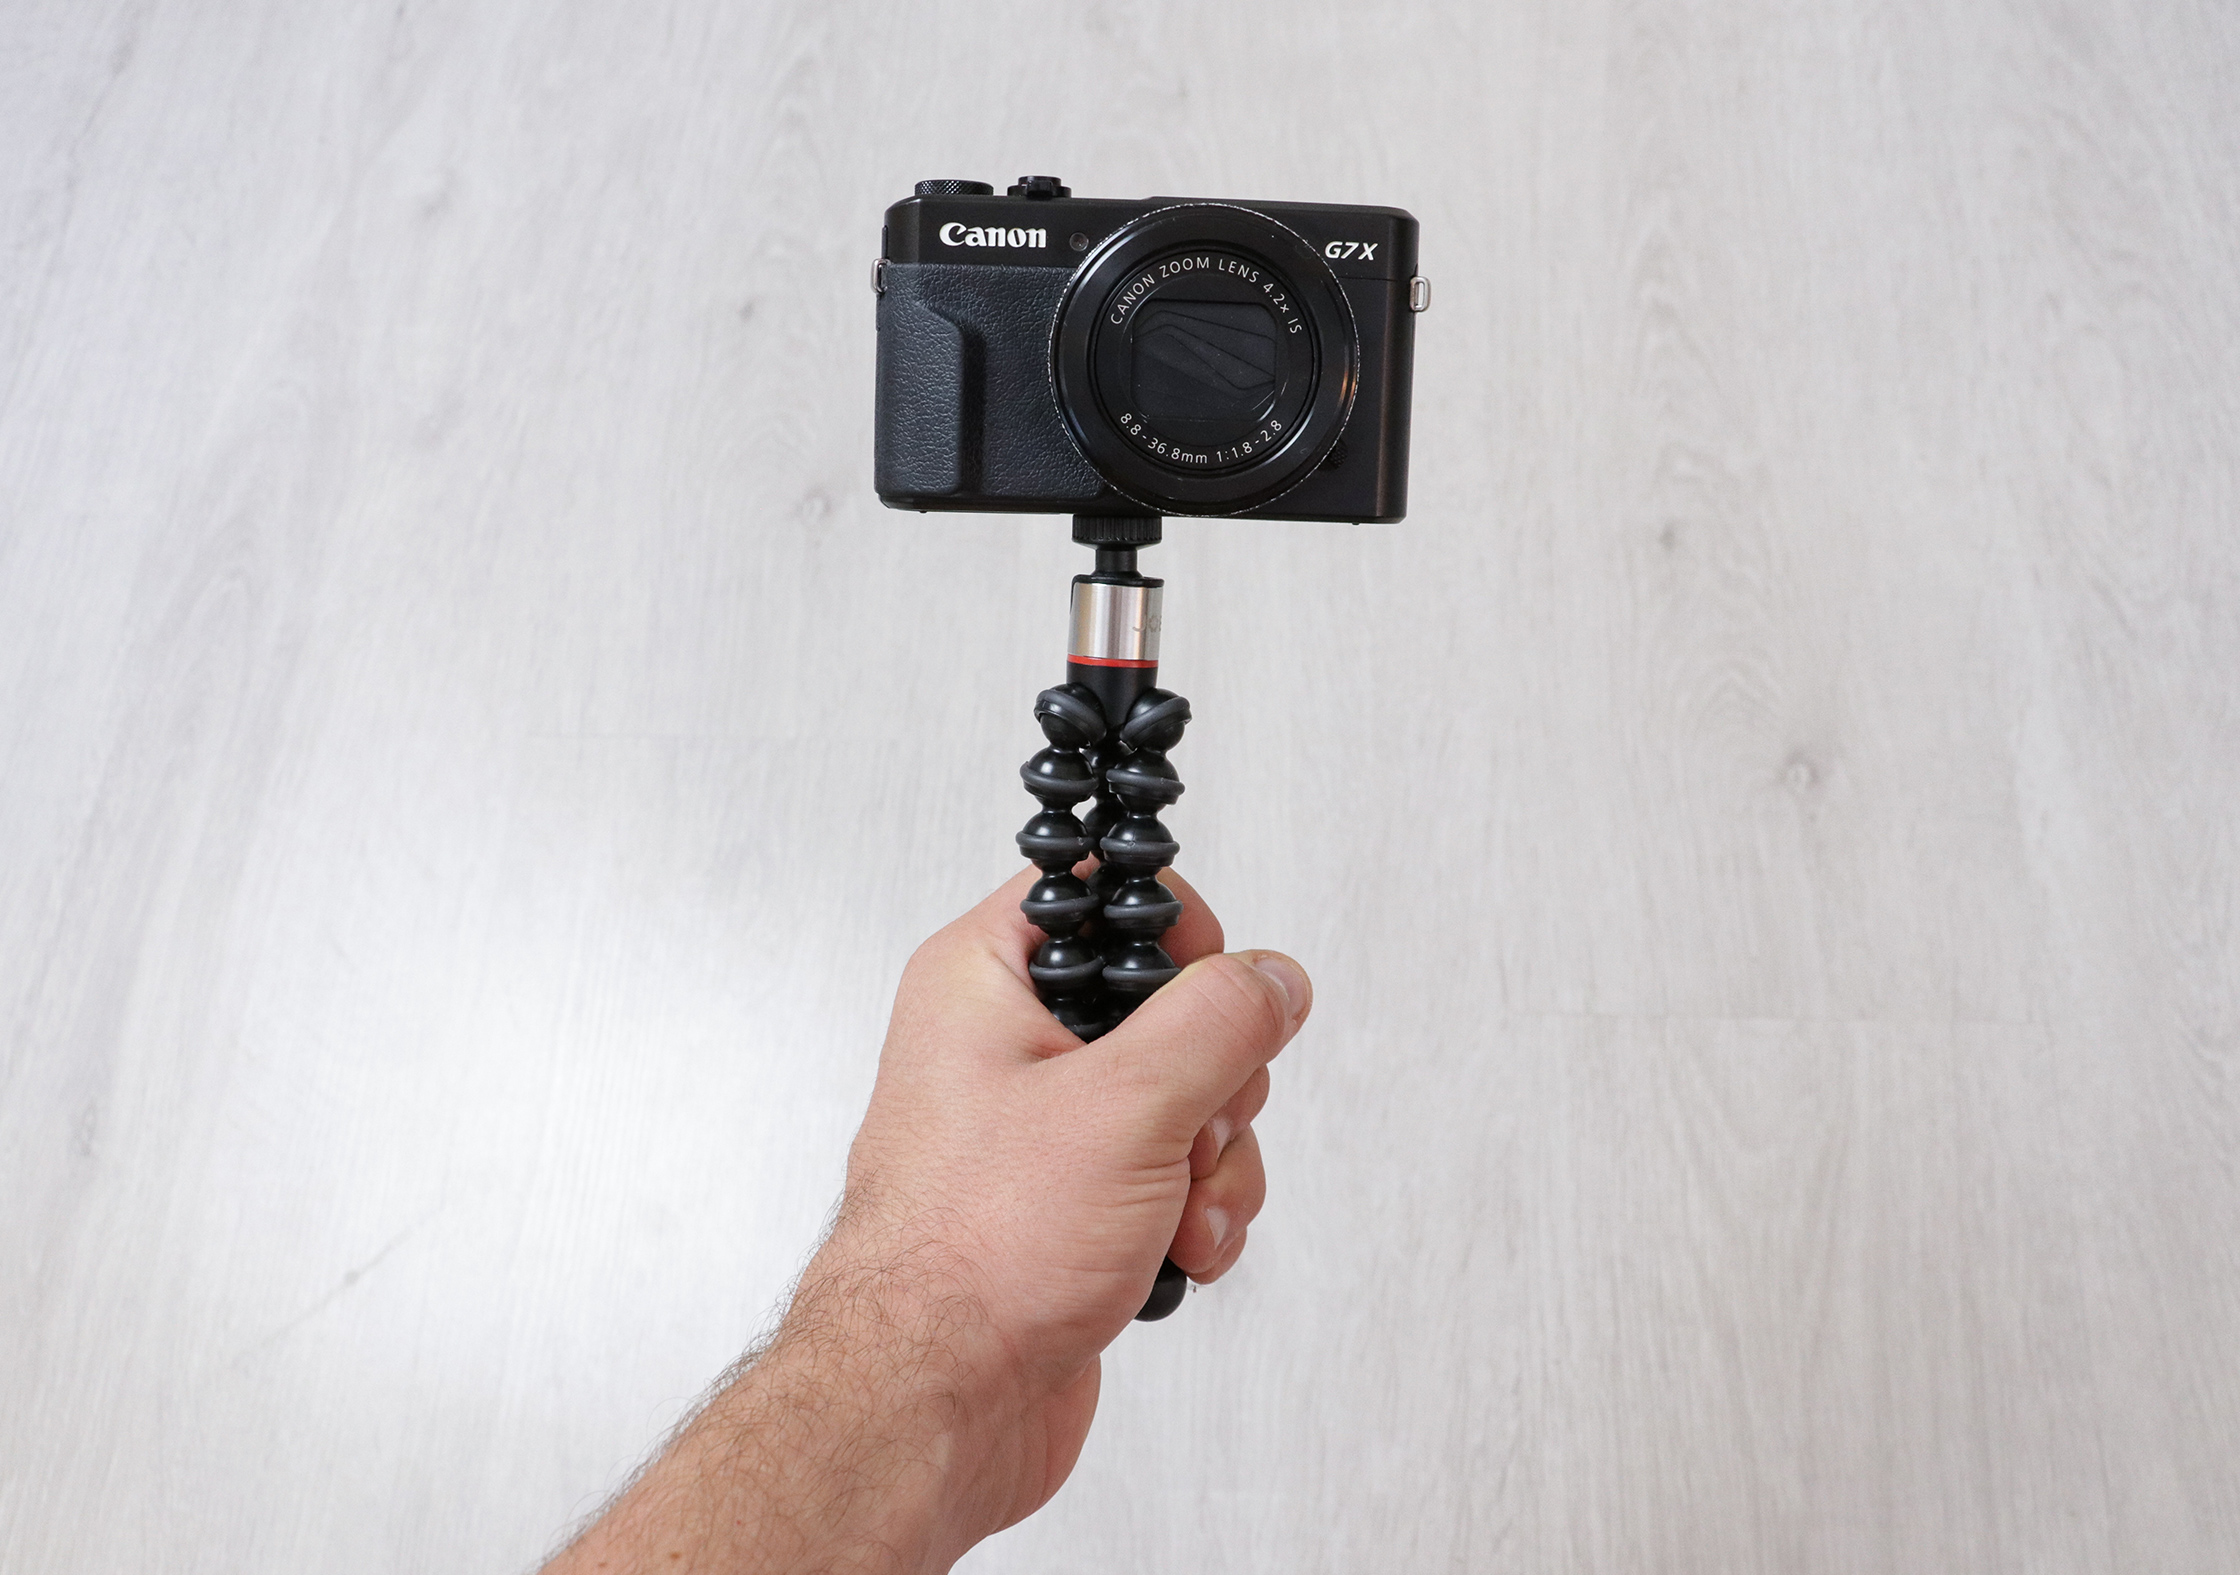 Using The JOBY GorillaPod 325 As A Grip